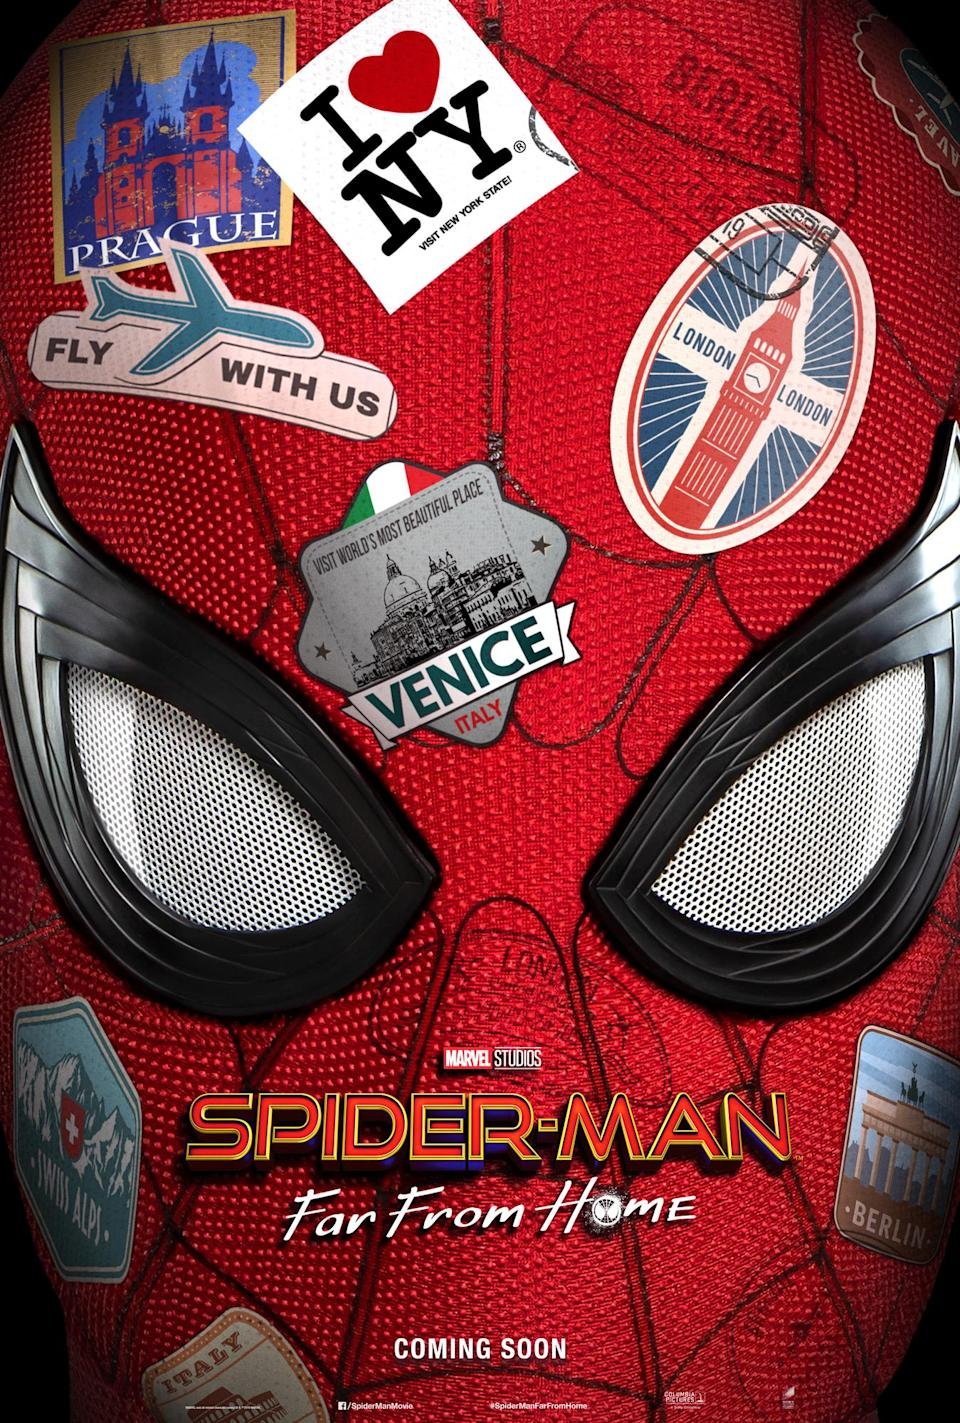 'Spider-Man: Far From Home' teaser poster (Sony Pictures)